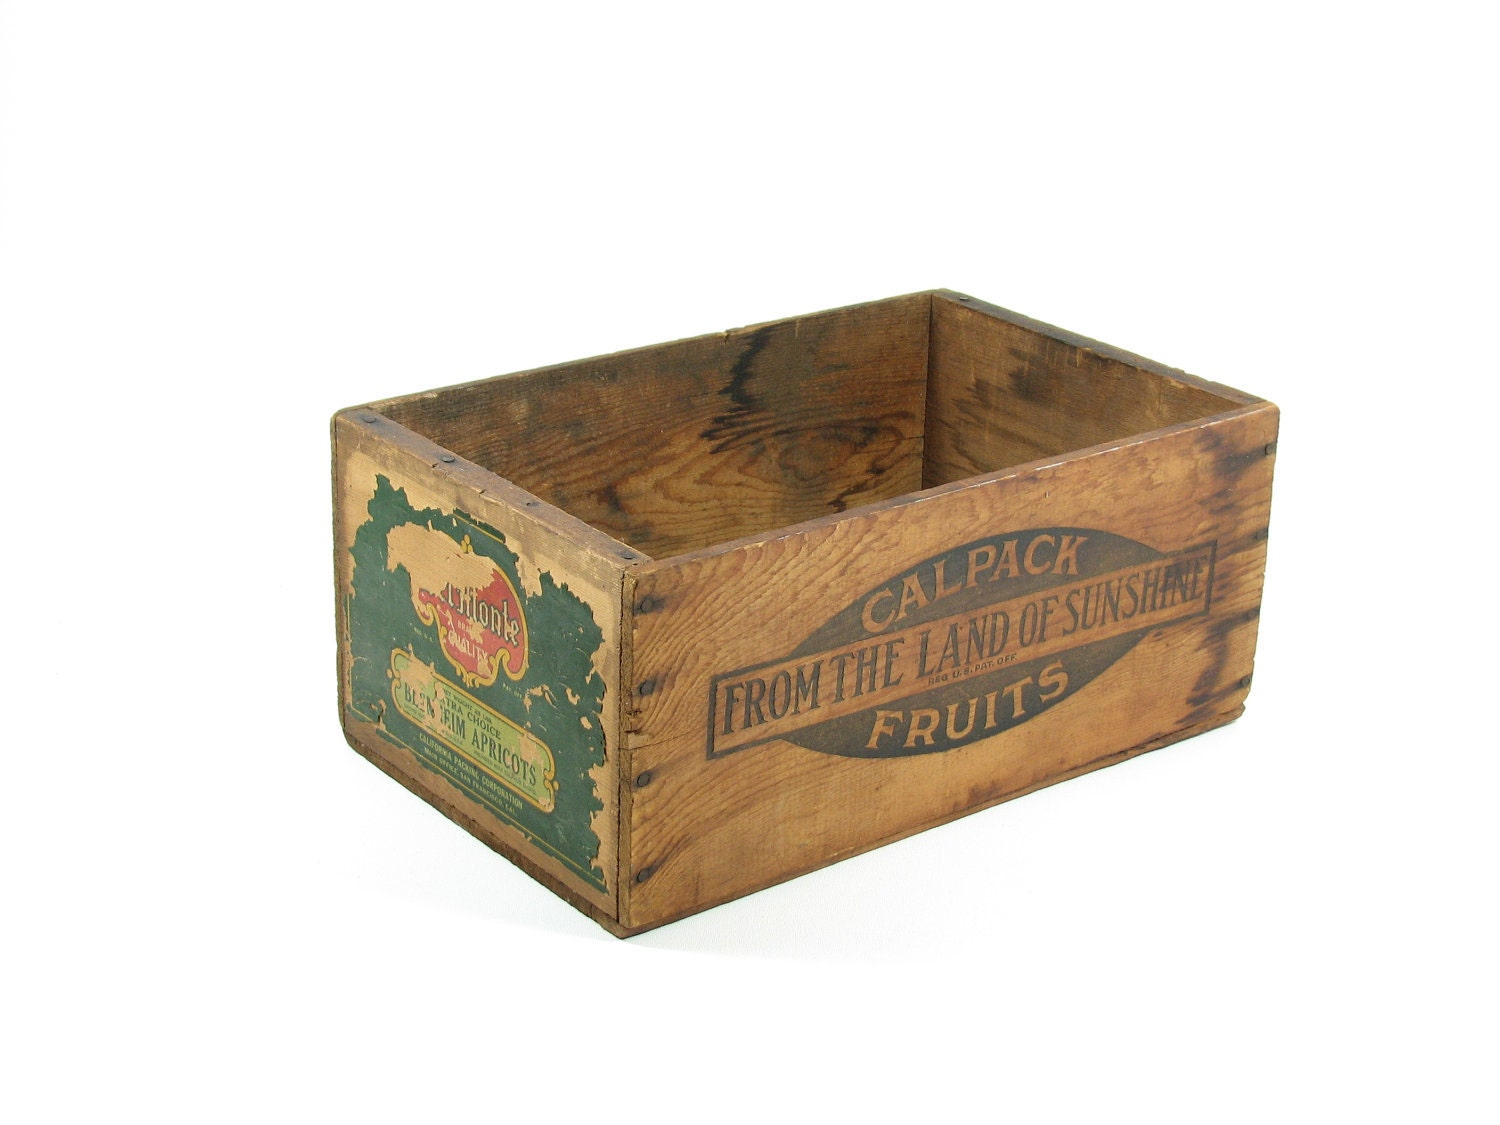 vintage wood fruit crate wooden box ca del monte cal pack